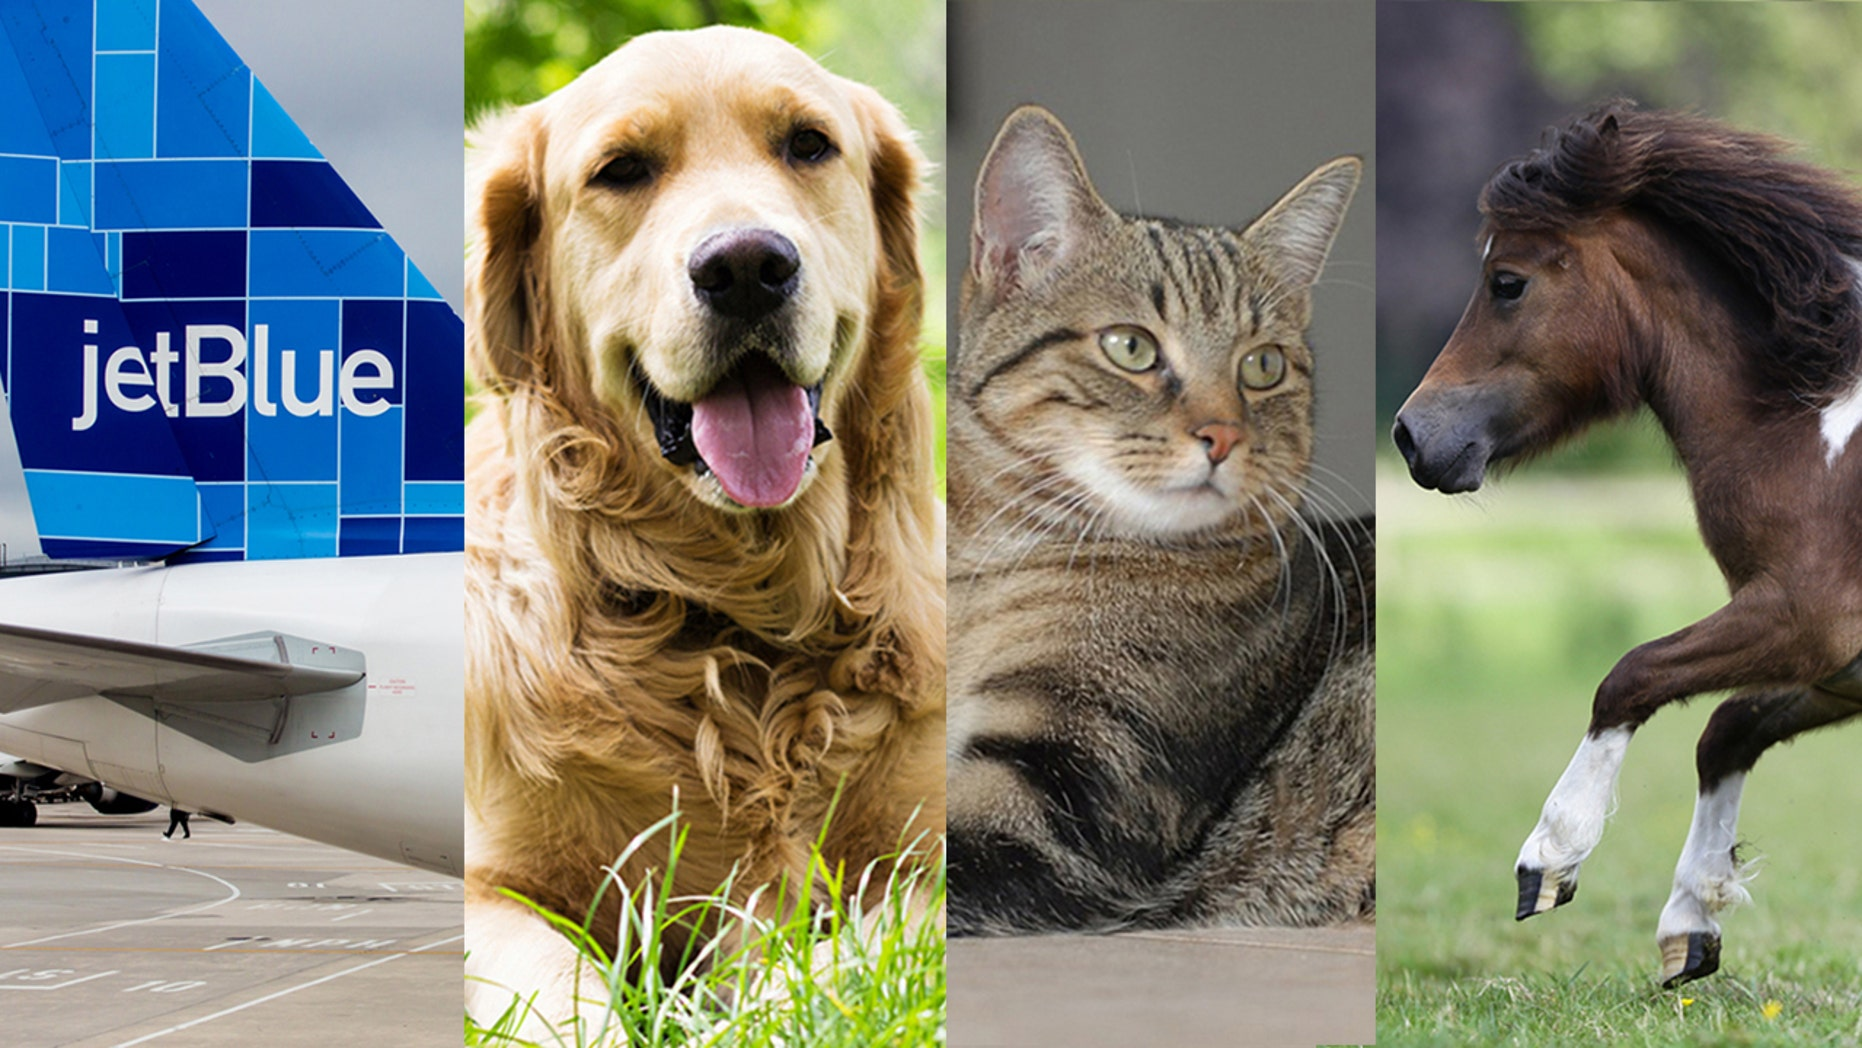 The carrier's new rules only allow dogs, cats and miniature horses on-board.